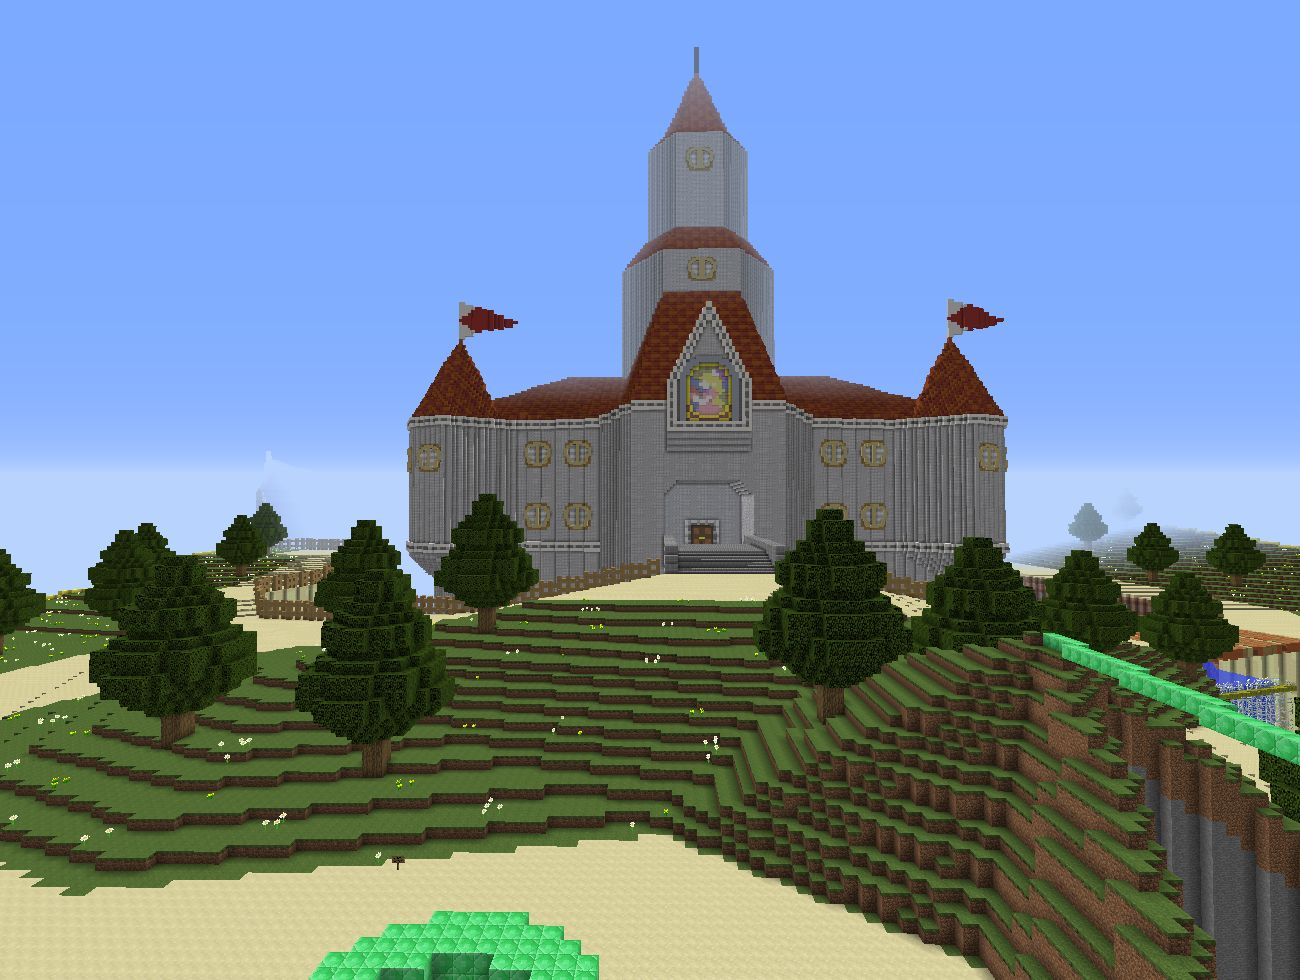 I'm building the complete Peach's Castle from Super Mario 64